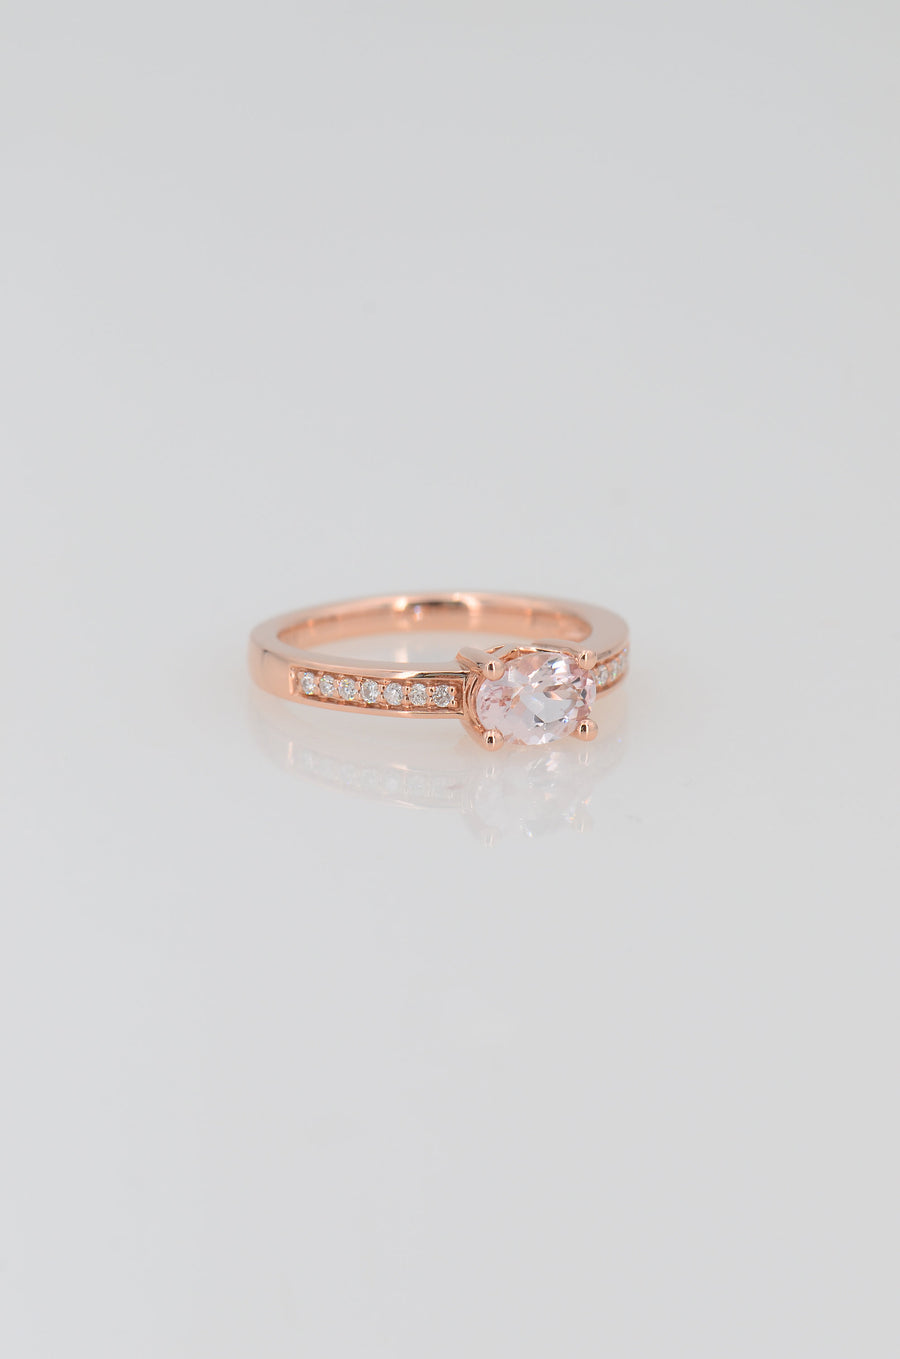 Morganite Halo Ring, Morganite Solitaire